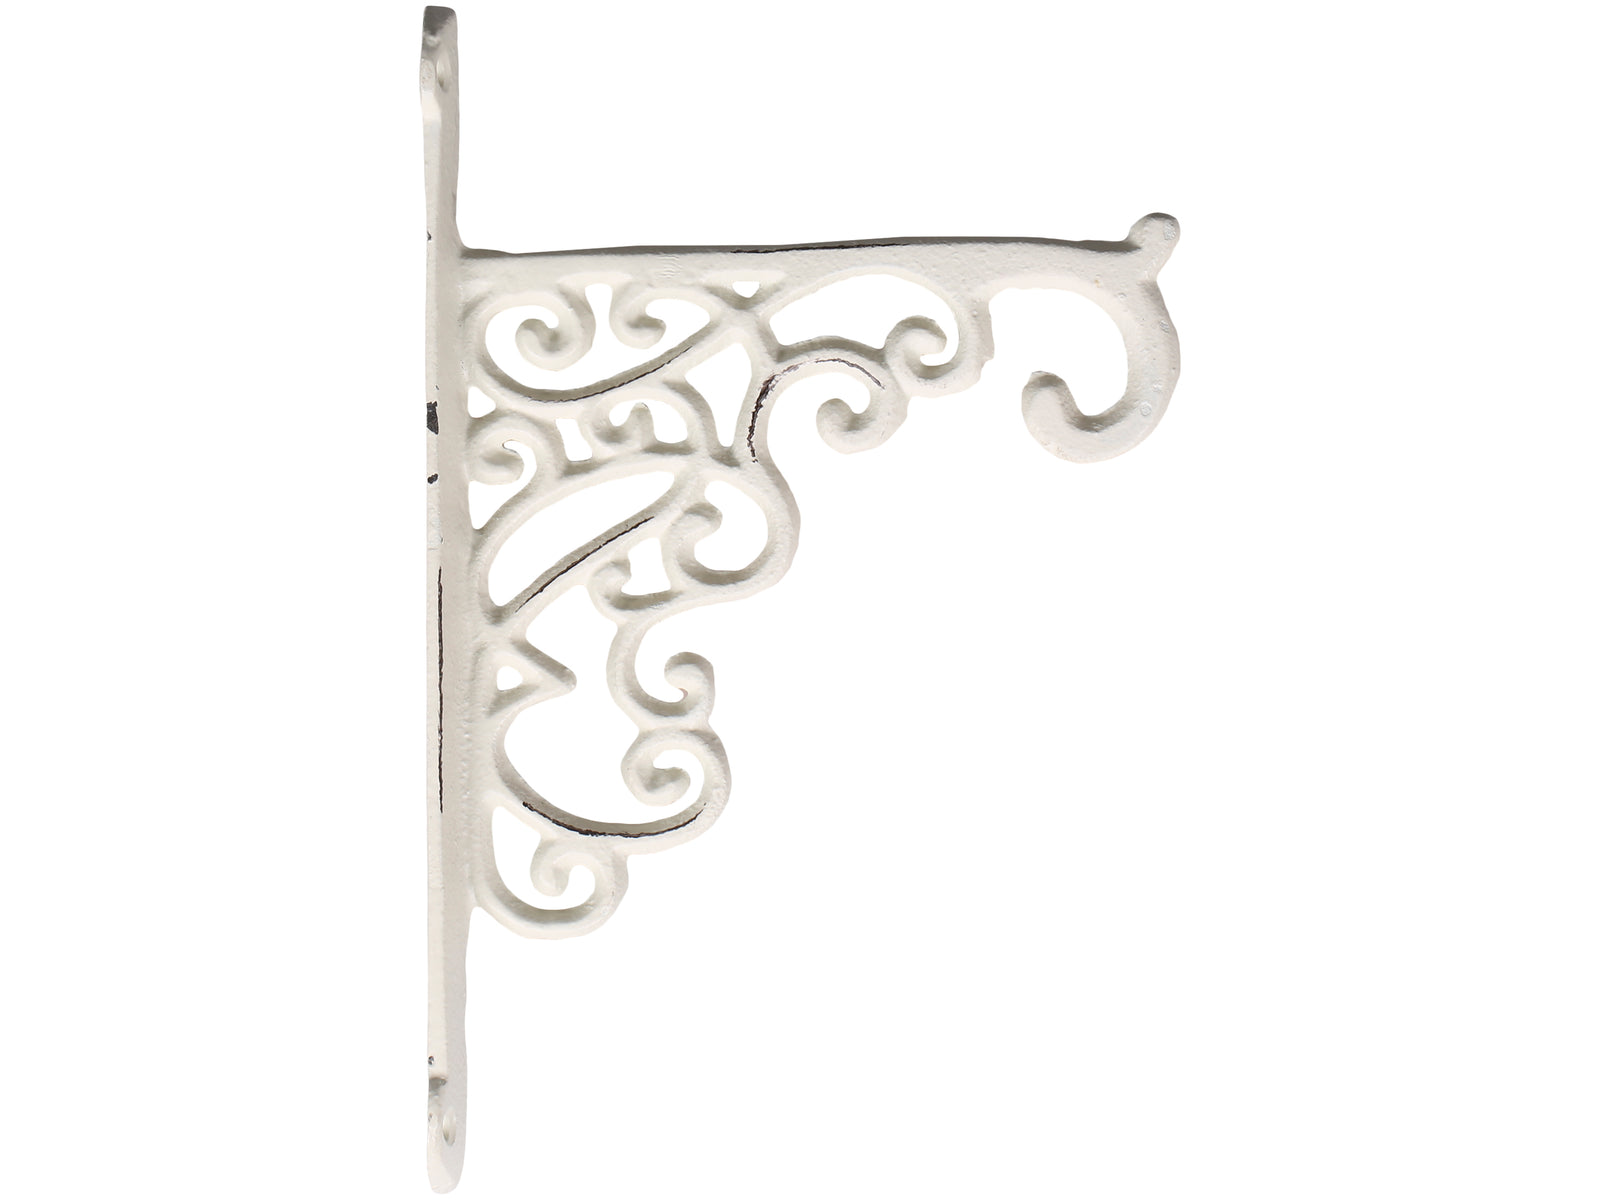 French antique blanc wall shelf bracket